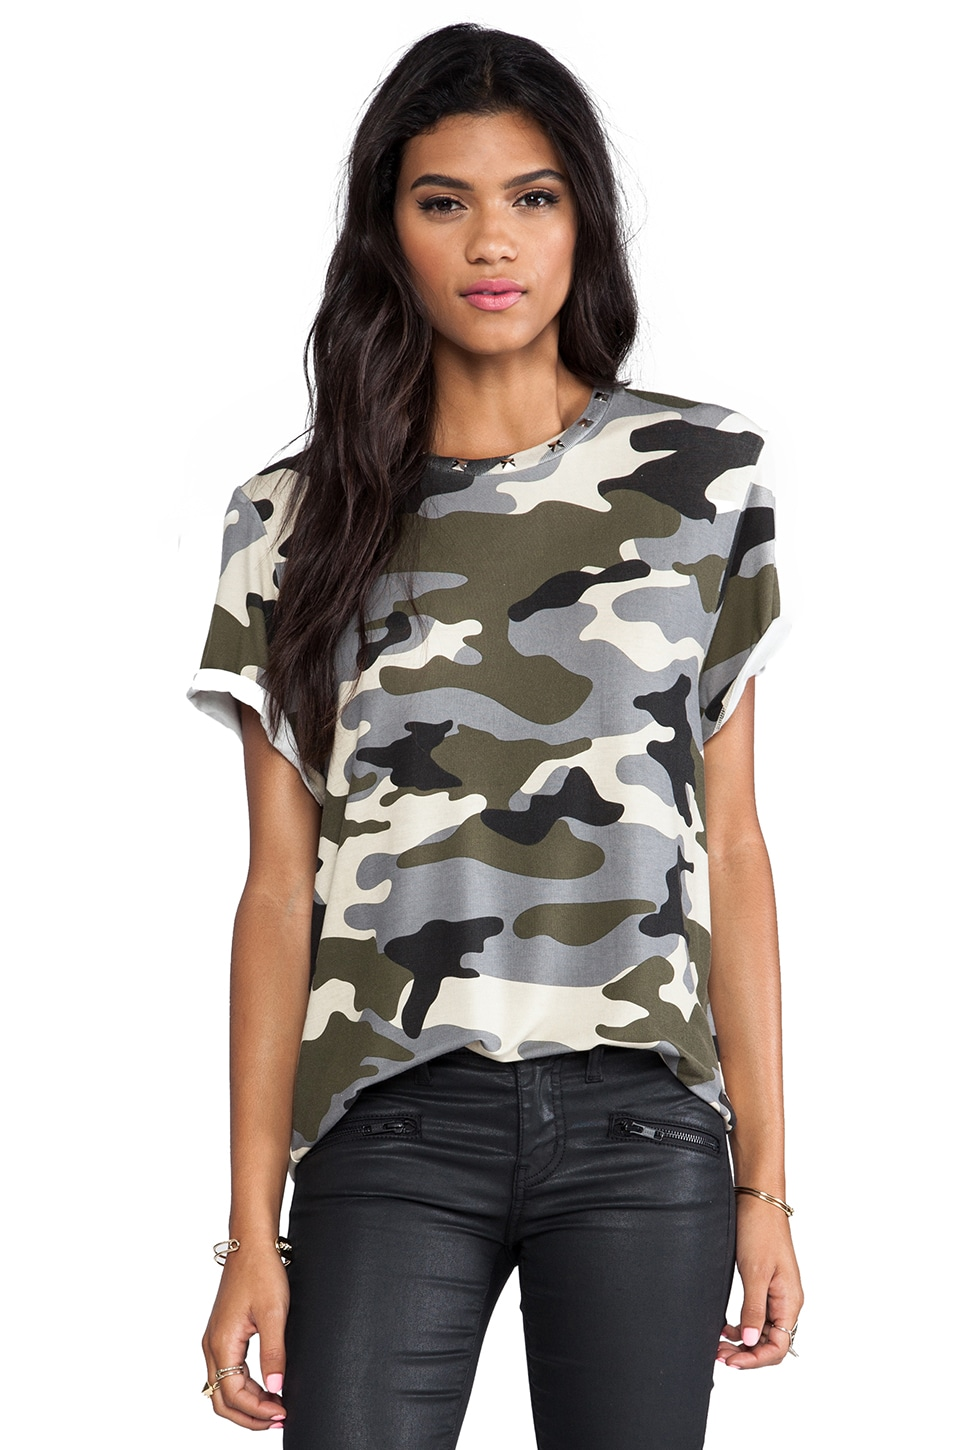 L'AMERICA Tank Girl Over Sized Tee in Camo